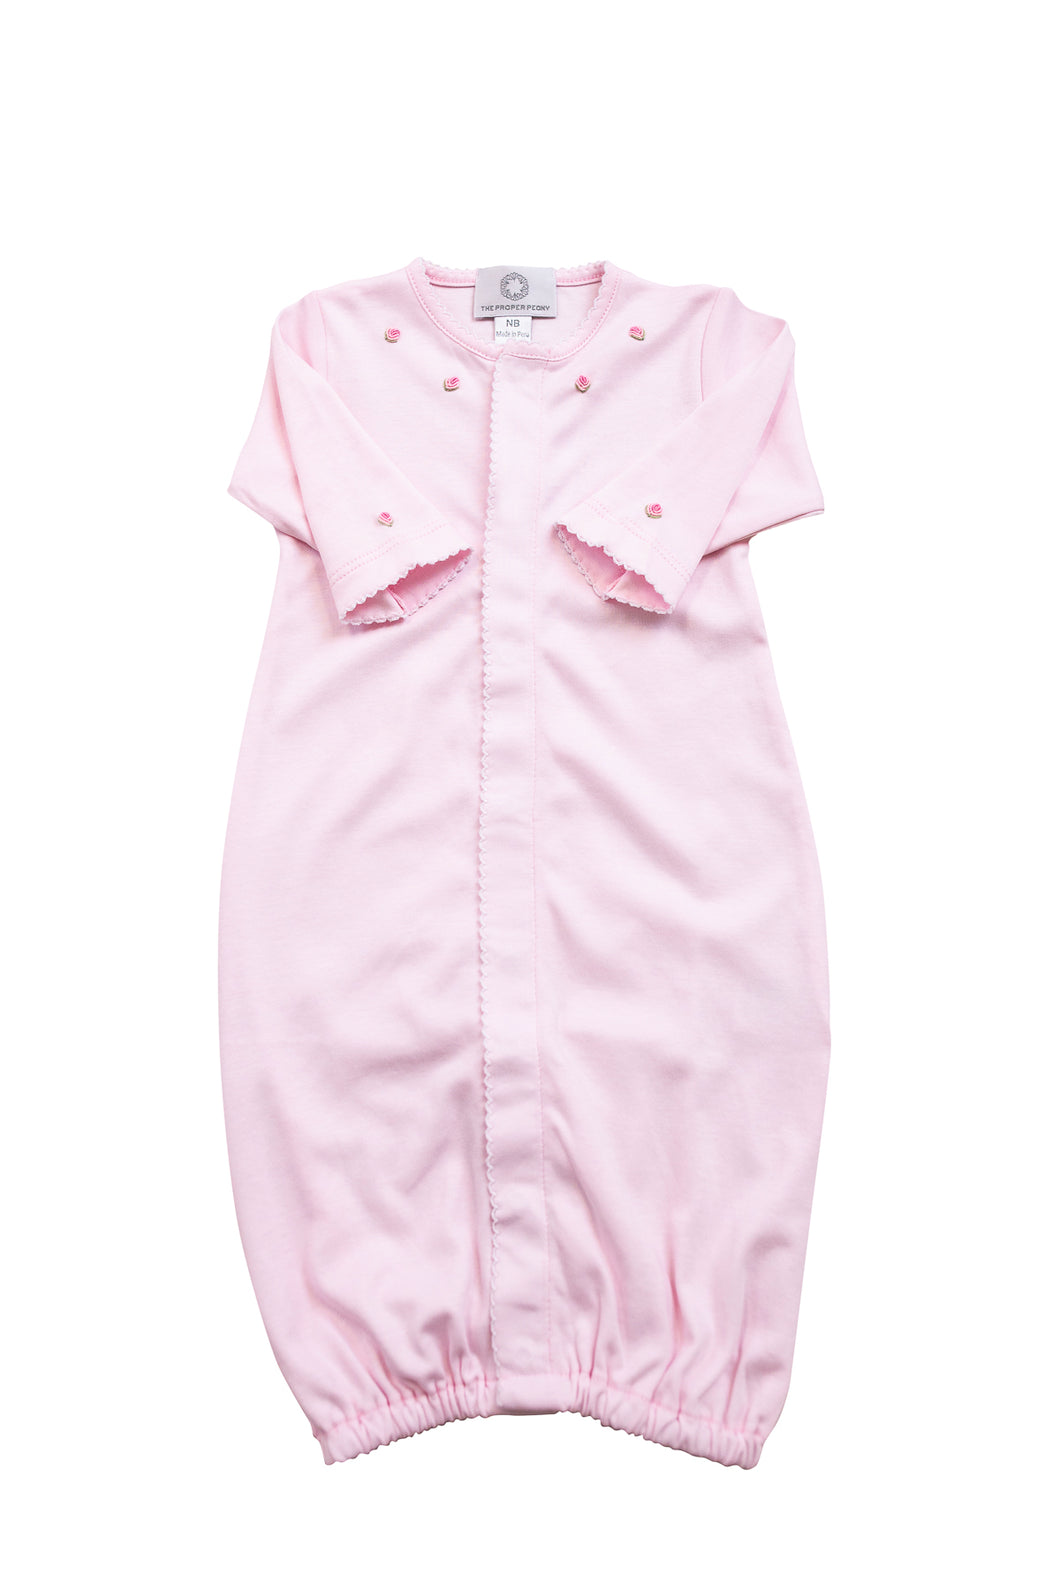 Pima Converter Gown - Pink